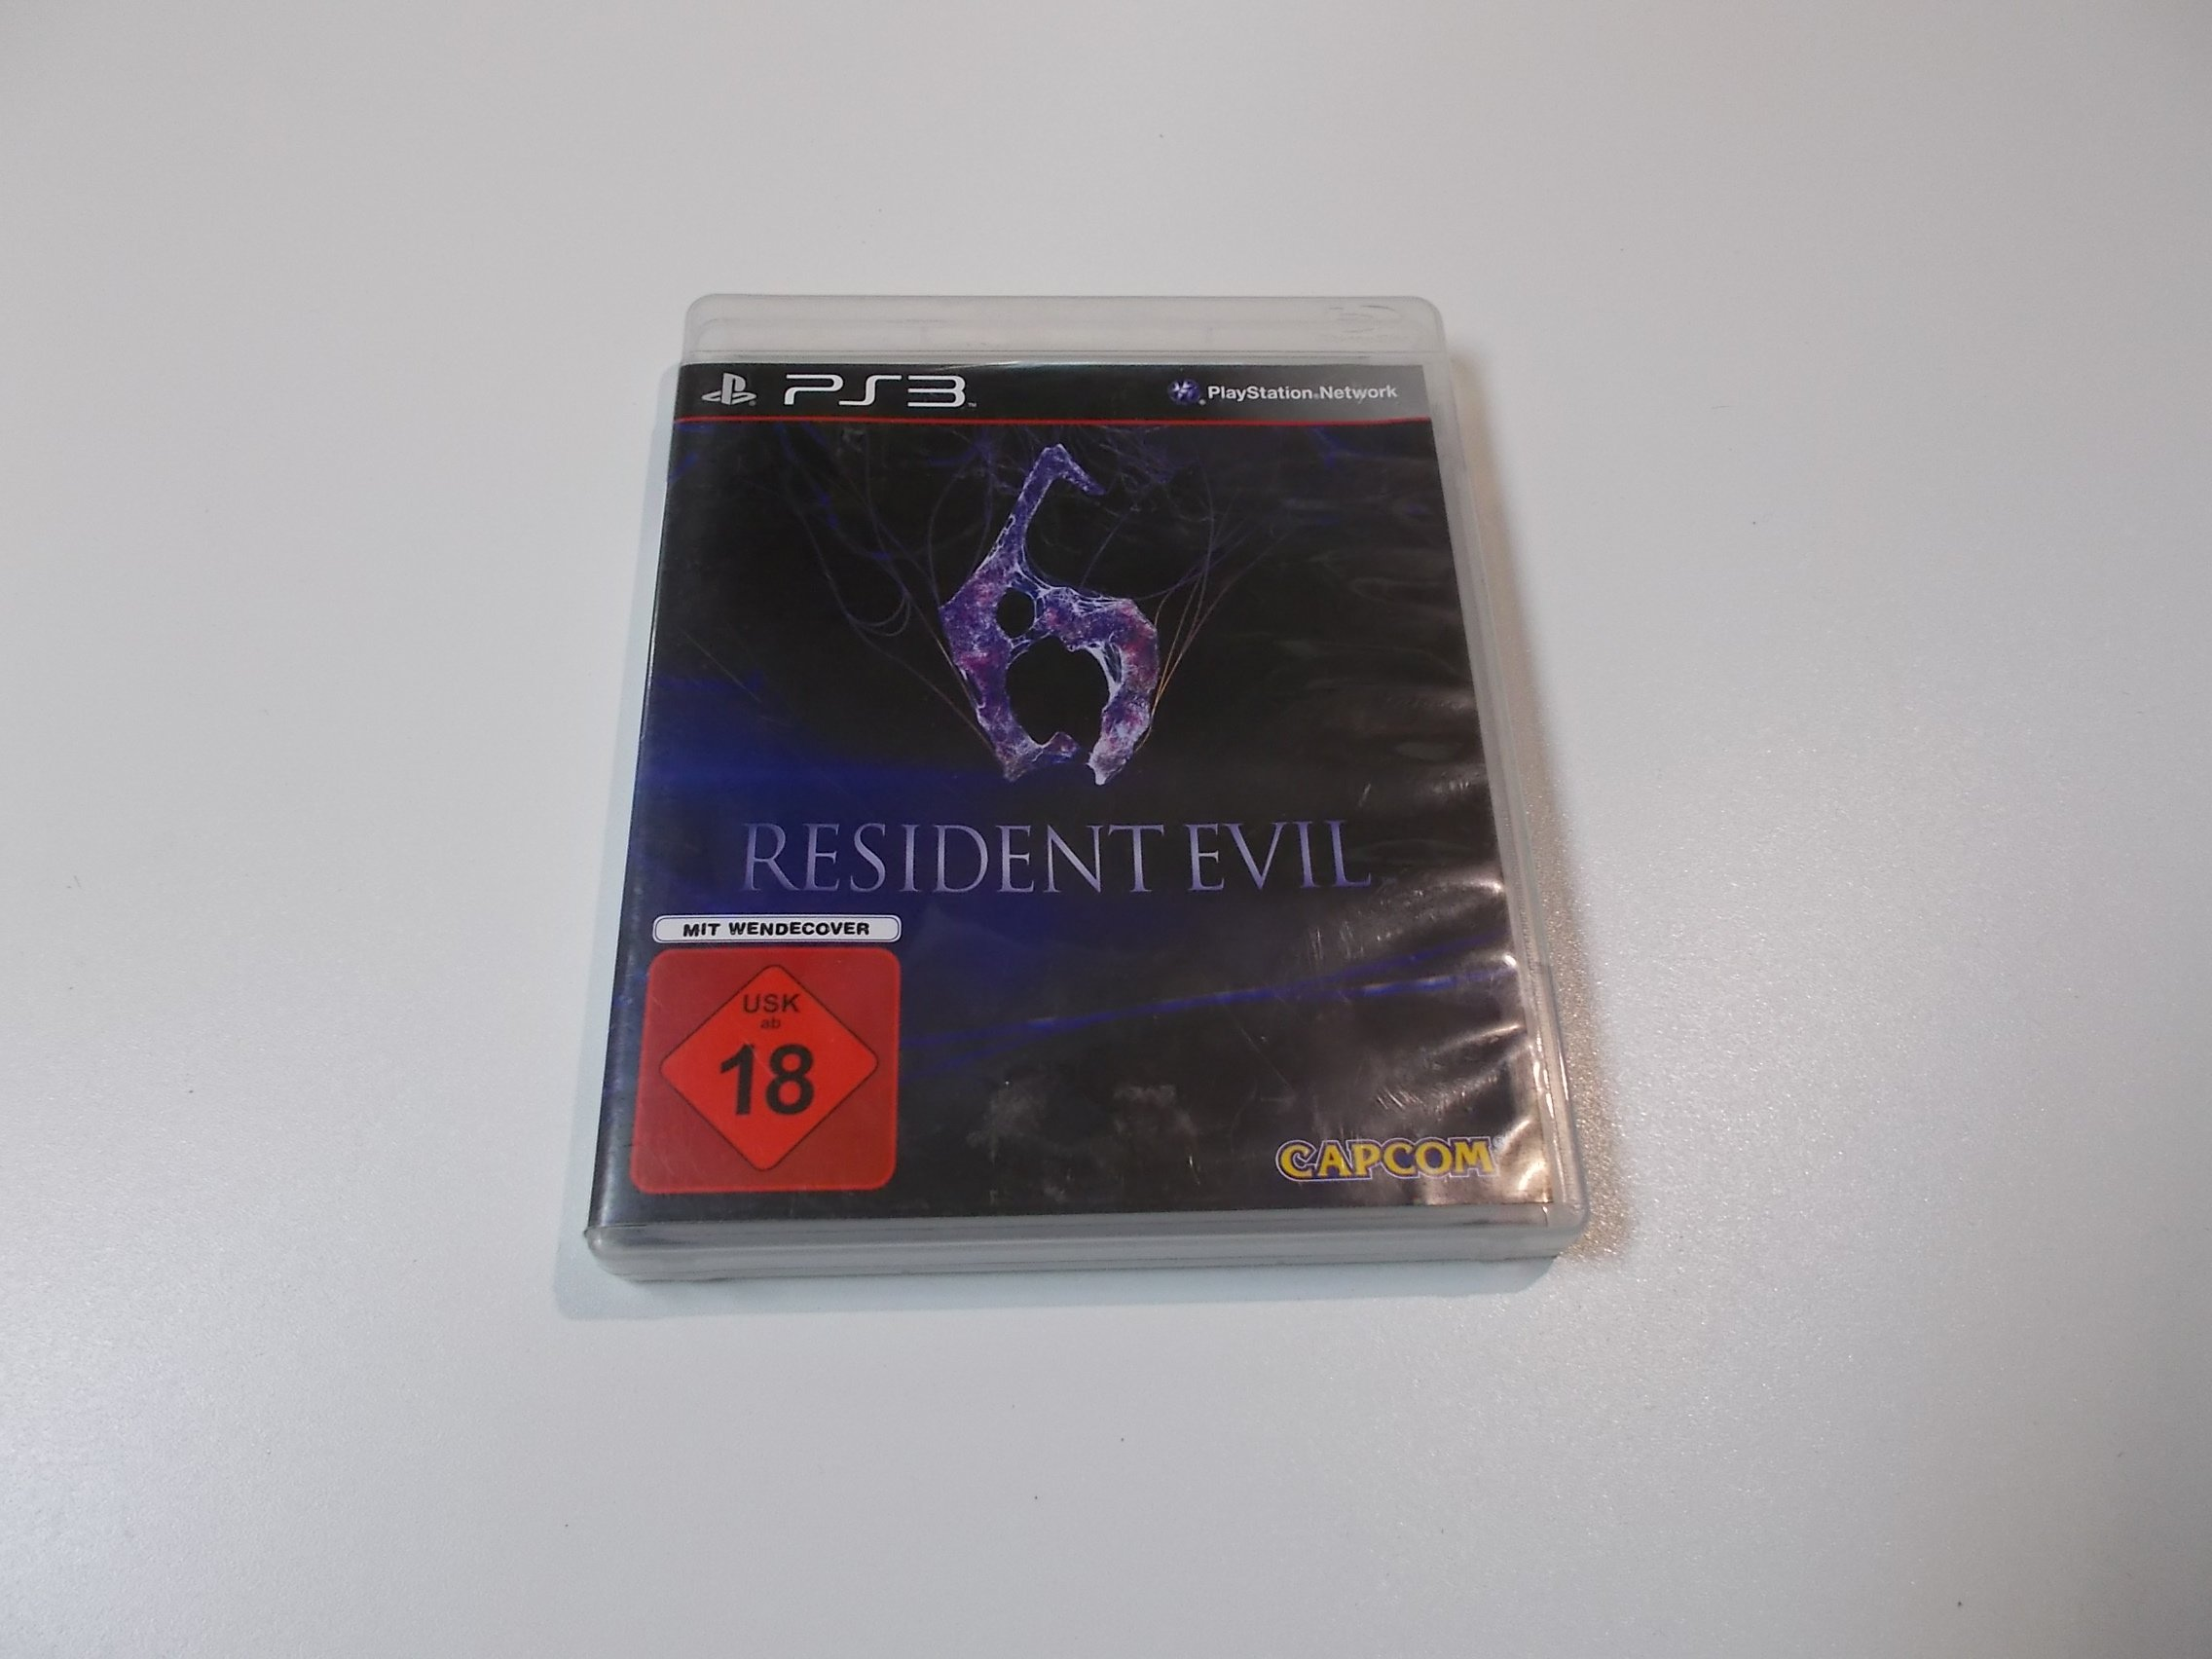 Resident Evil 6 - GRA Ps3 - Opole 0389